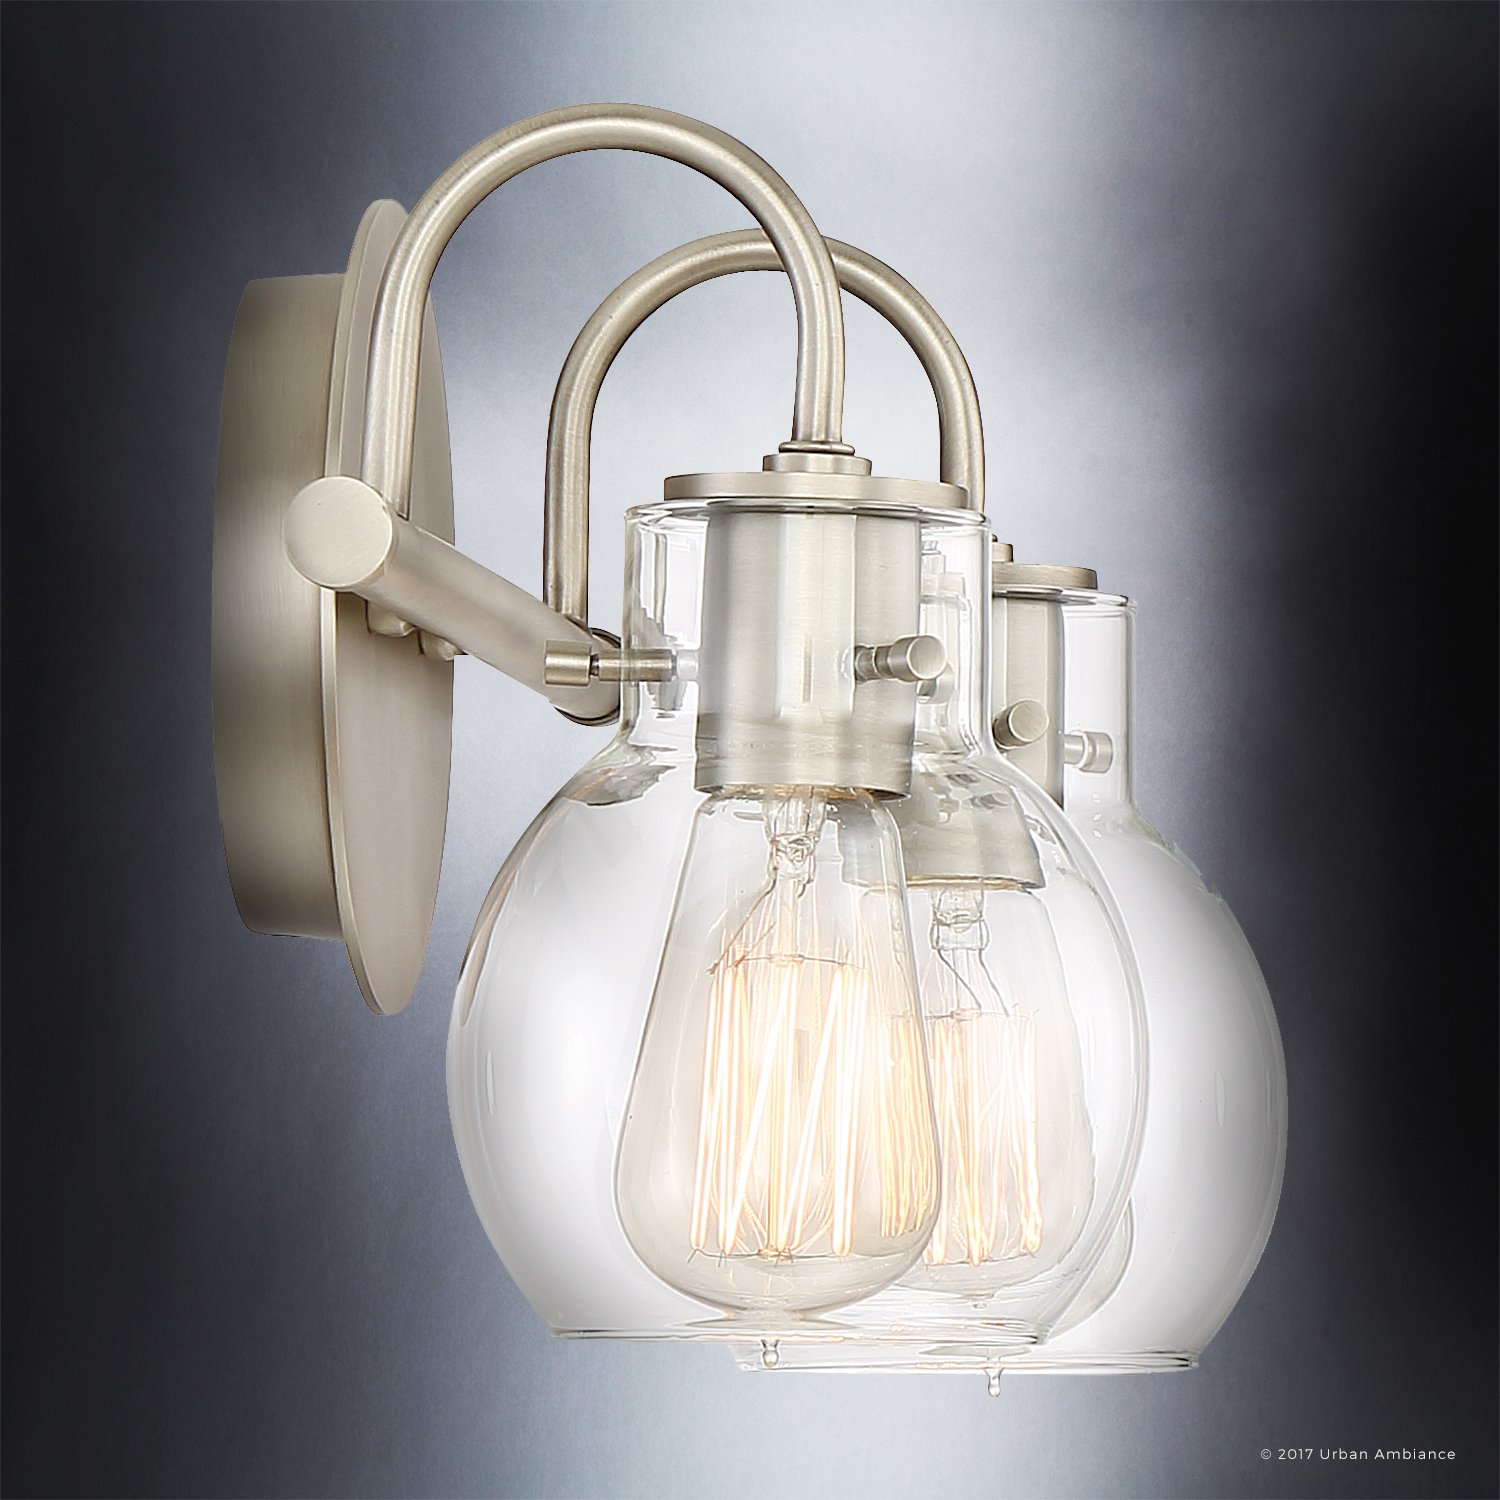 Luxury Vintage Bathroom Light, Medium Size: 9''H x 14''W, with Industrial Style Elements, Floating Glass Design, Aged Nickel Finish and Clear Glass, Includes Edison Bulbs, UQL2040 by Urban Ambiance by Urban Ambiance (Image #5)